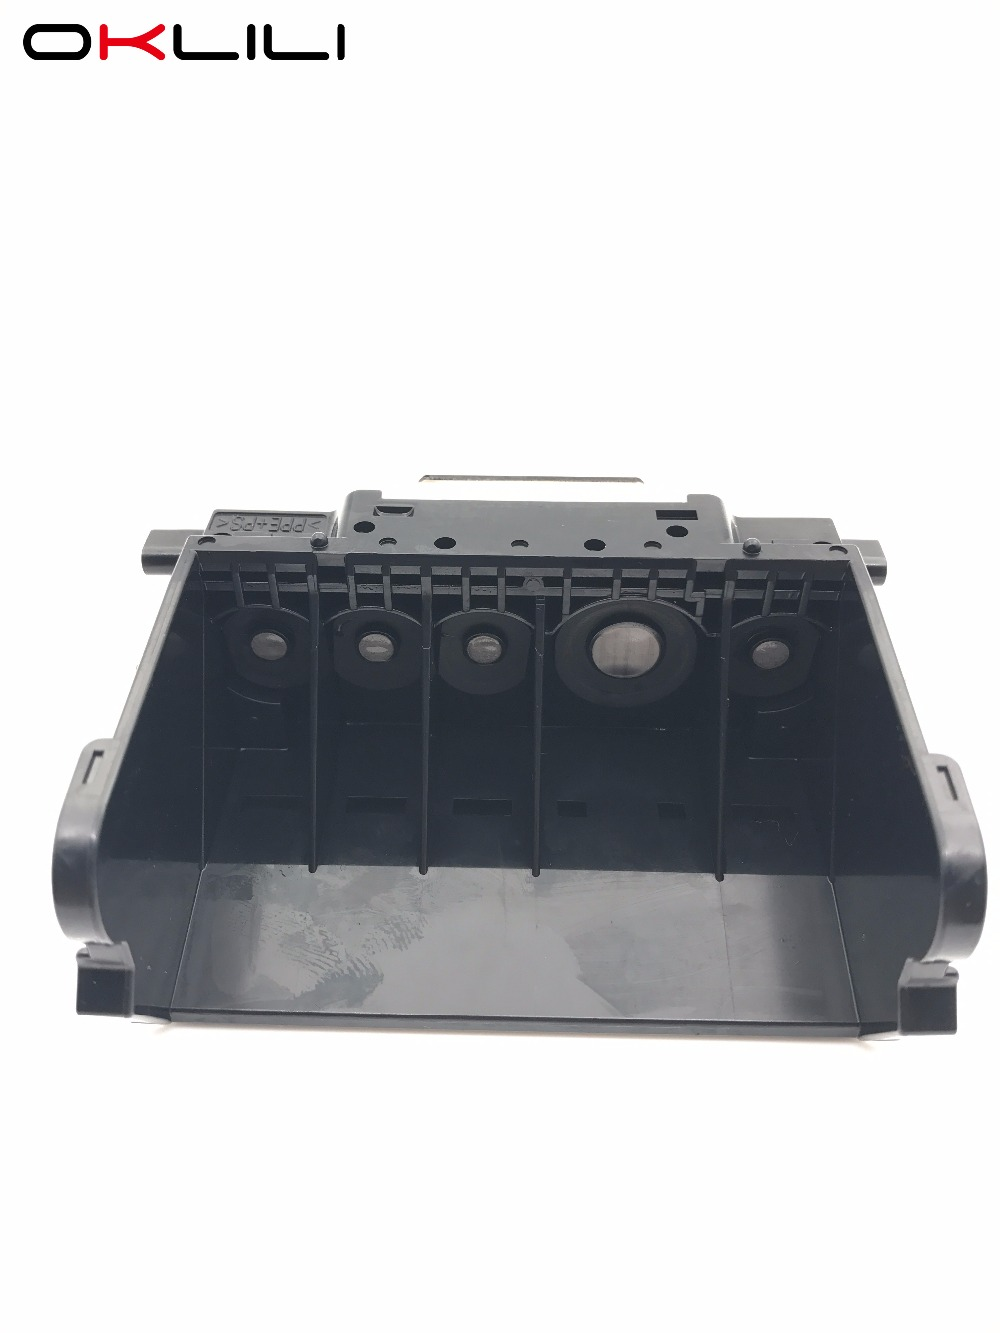 OKLILI ORIGINAL QY6-0075 QY6-0075-000 Printhead Print Head Printer Head for Canon iP5300 MP810 iP4500 MP610 MX850 printhead qy6 0075 print head for canon ip4500 ip5300 mp610mp810mx850 printers